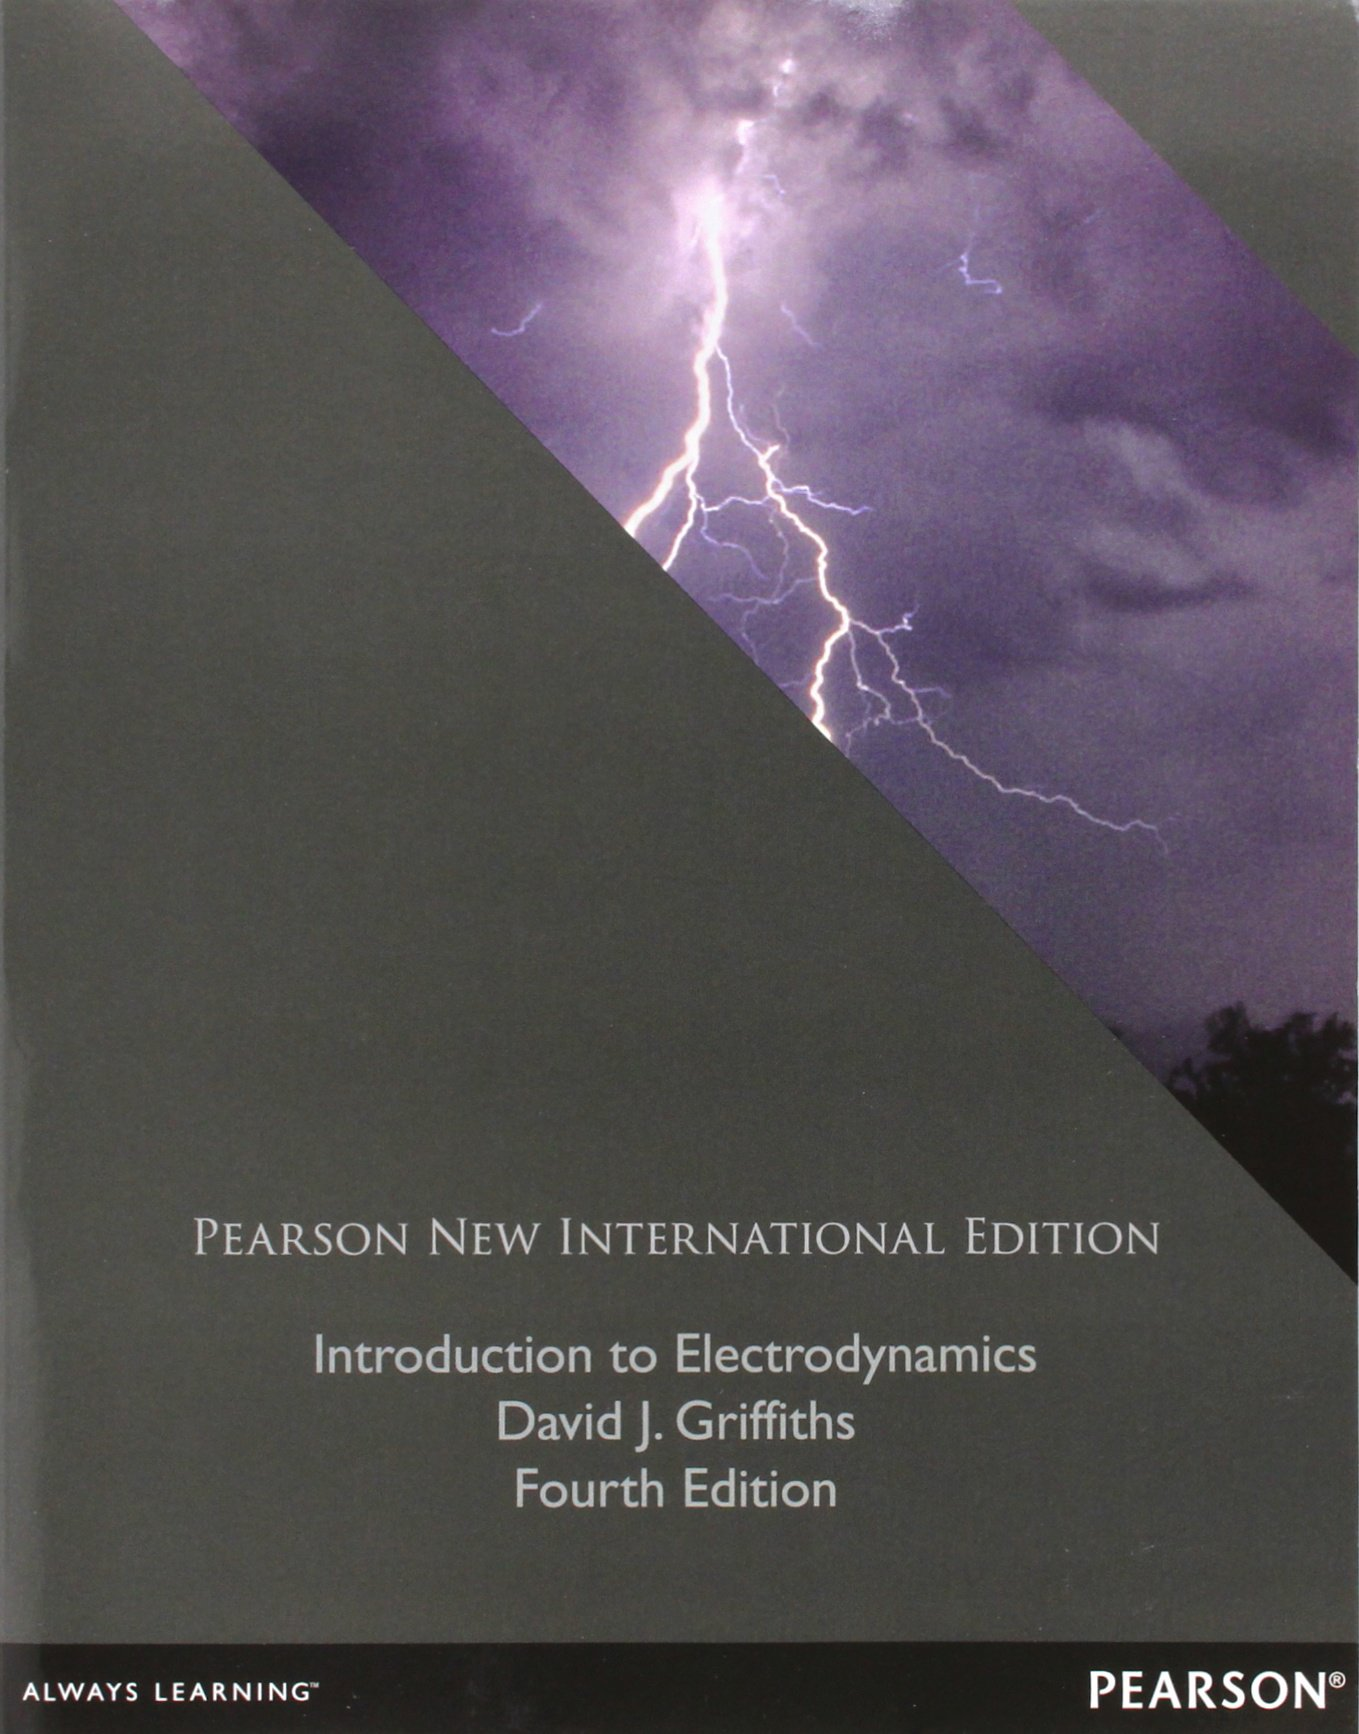 Introduction to electrodynamics pearson new international edition introduction to electrodynamics pearson new international edition david j griffiths 9781292021423 amazon books fandeluxe Gallery